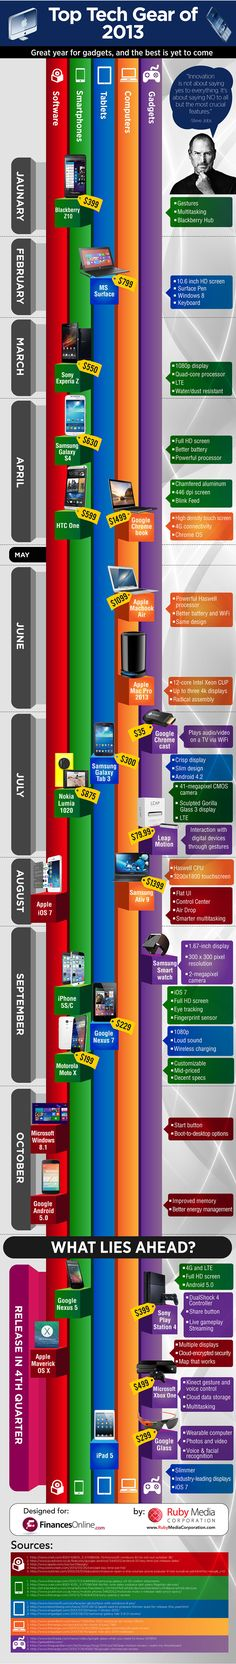 2013 Top Tech Gear For Gadget Lovers Everywhere [Infographic]